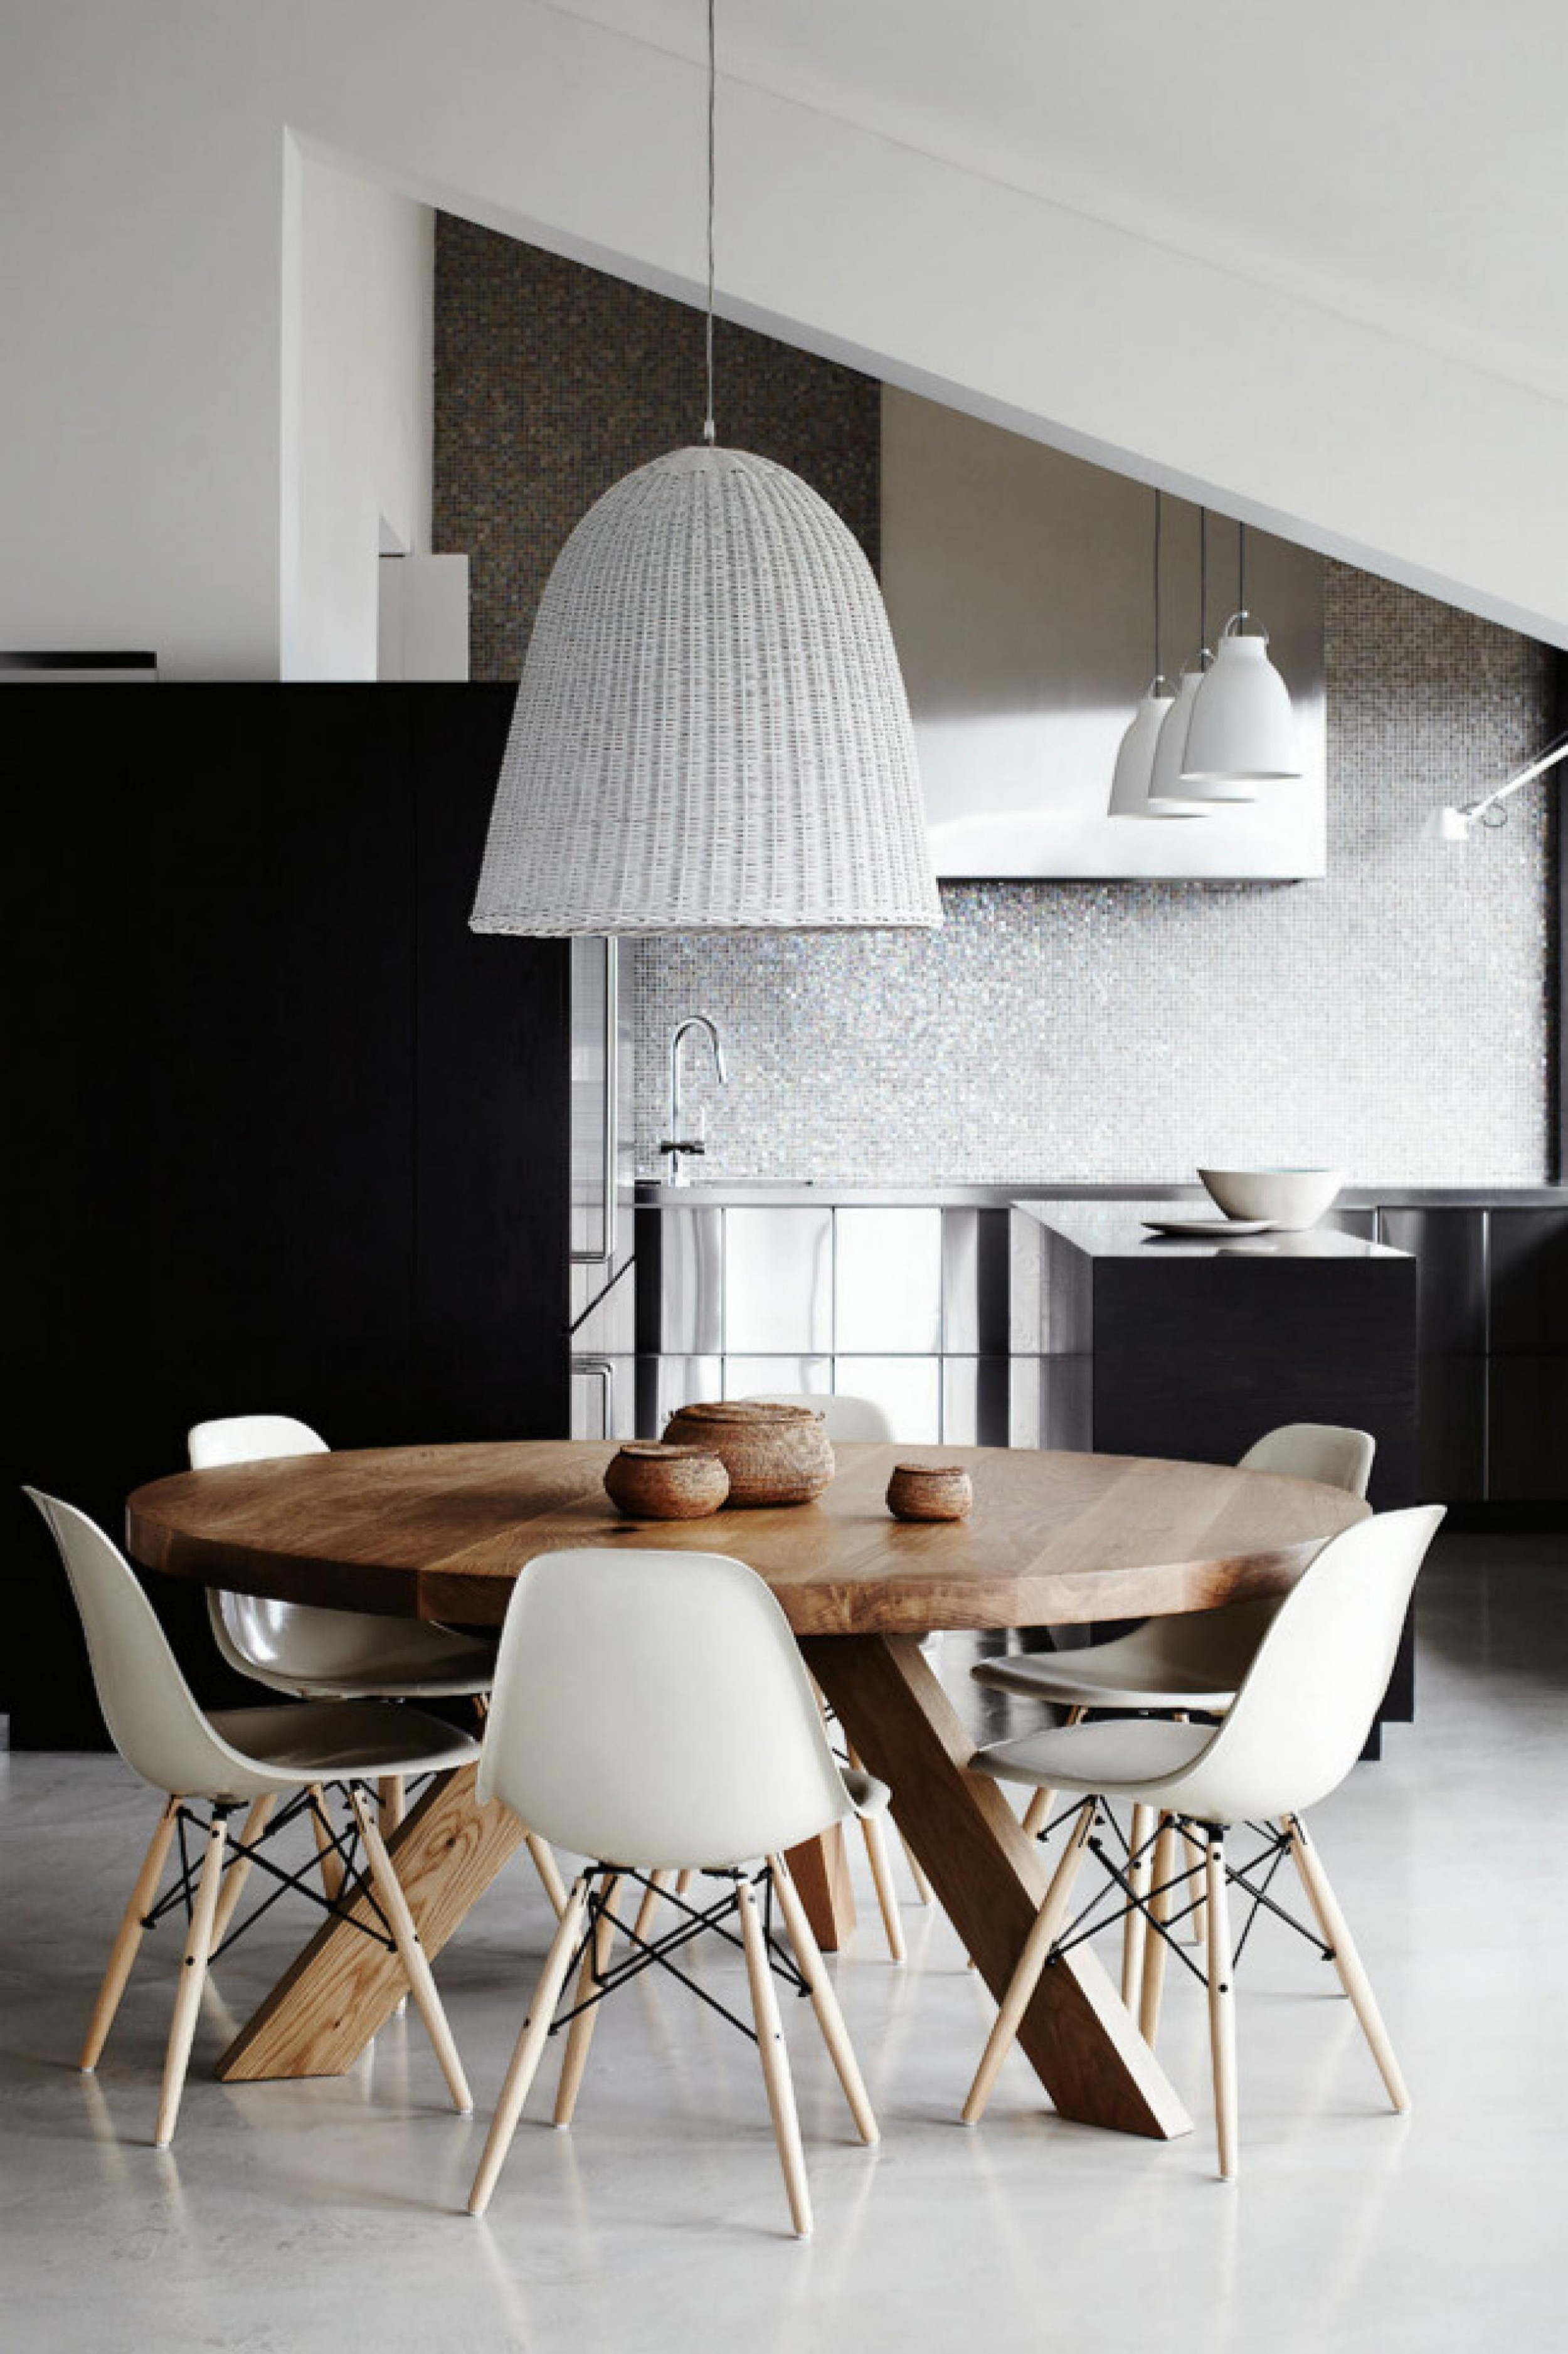 Great Round Table Banquette